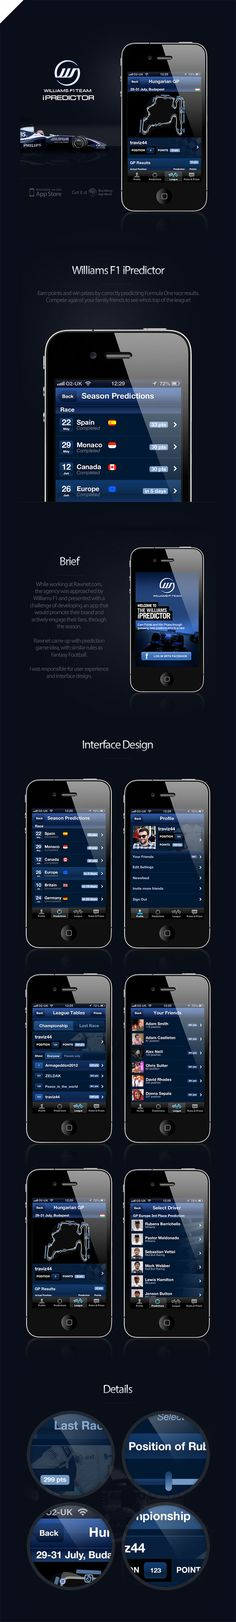 Williams F1 iPredictor by Przemek Bembnista, via Behance